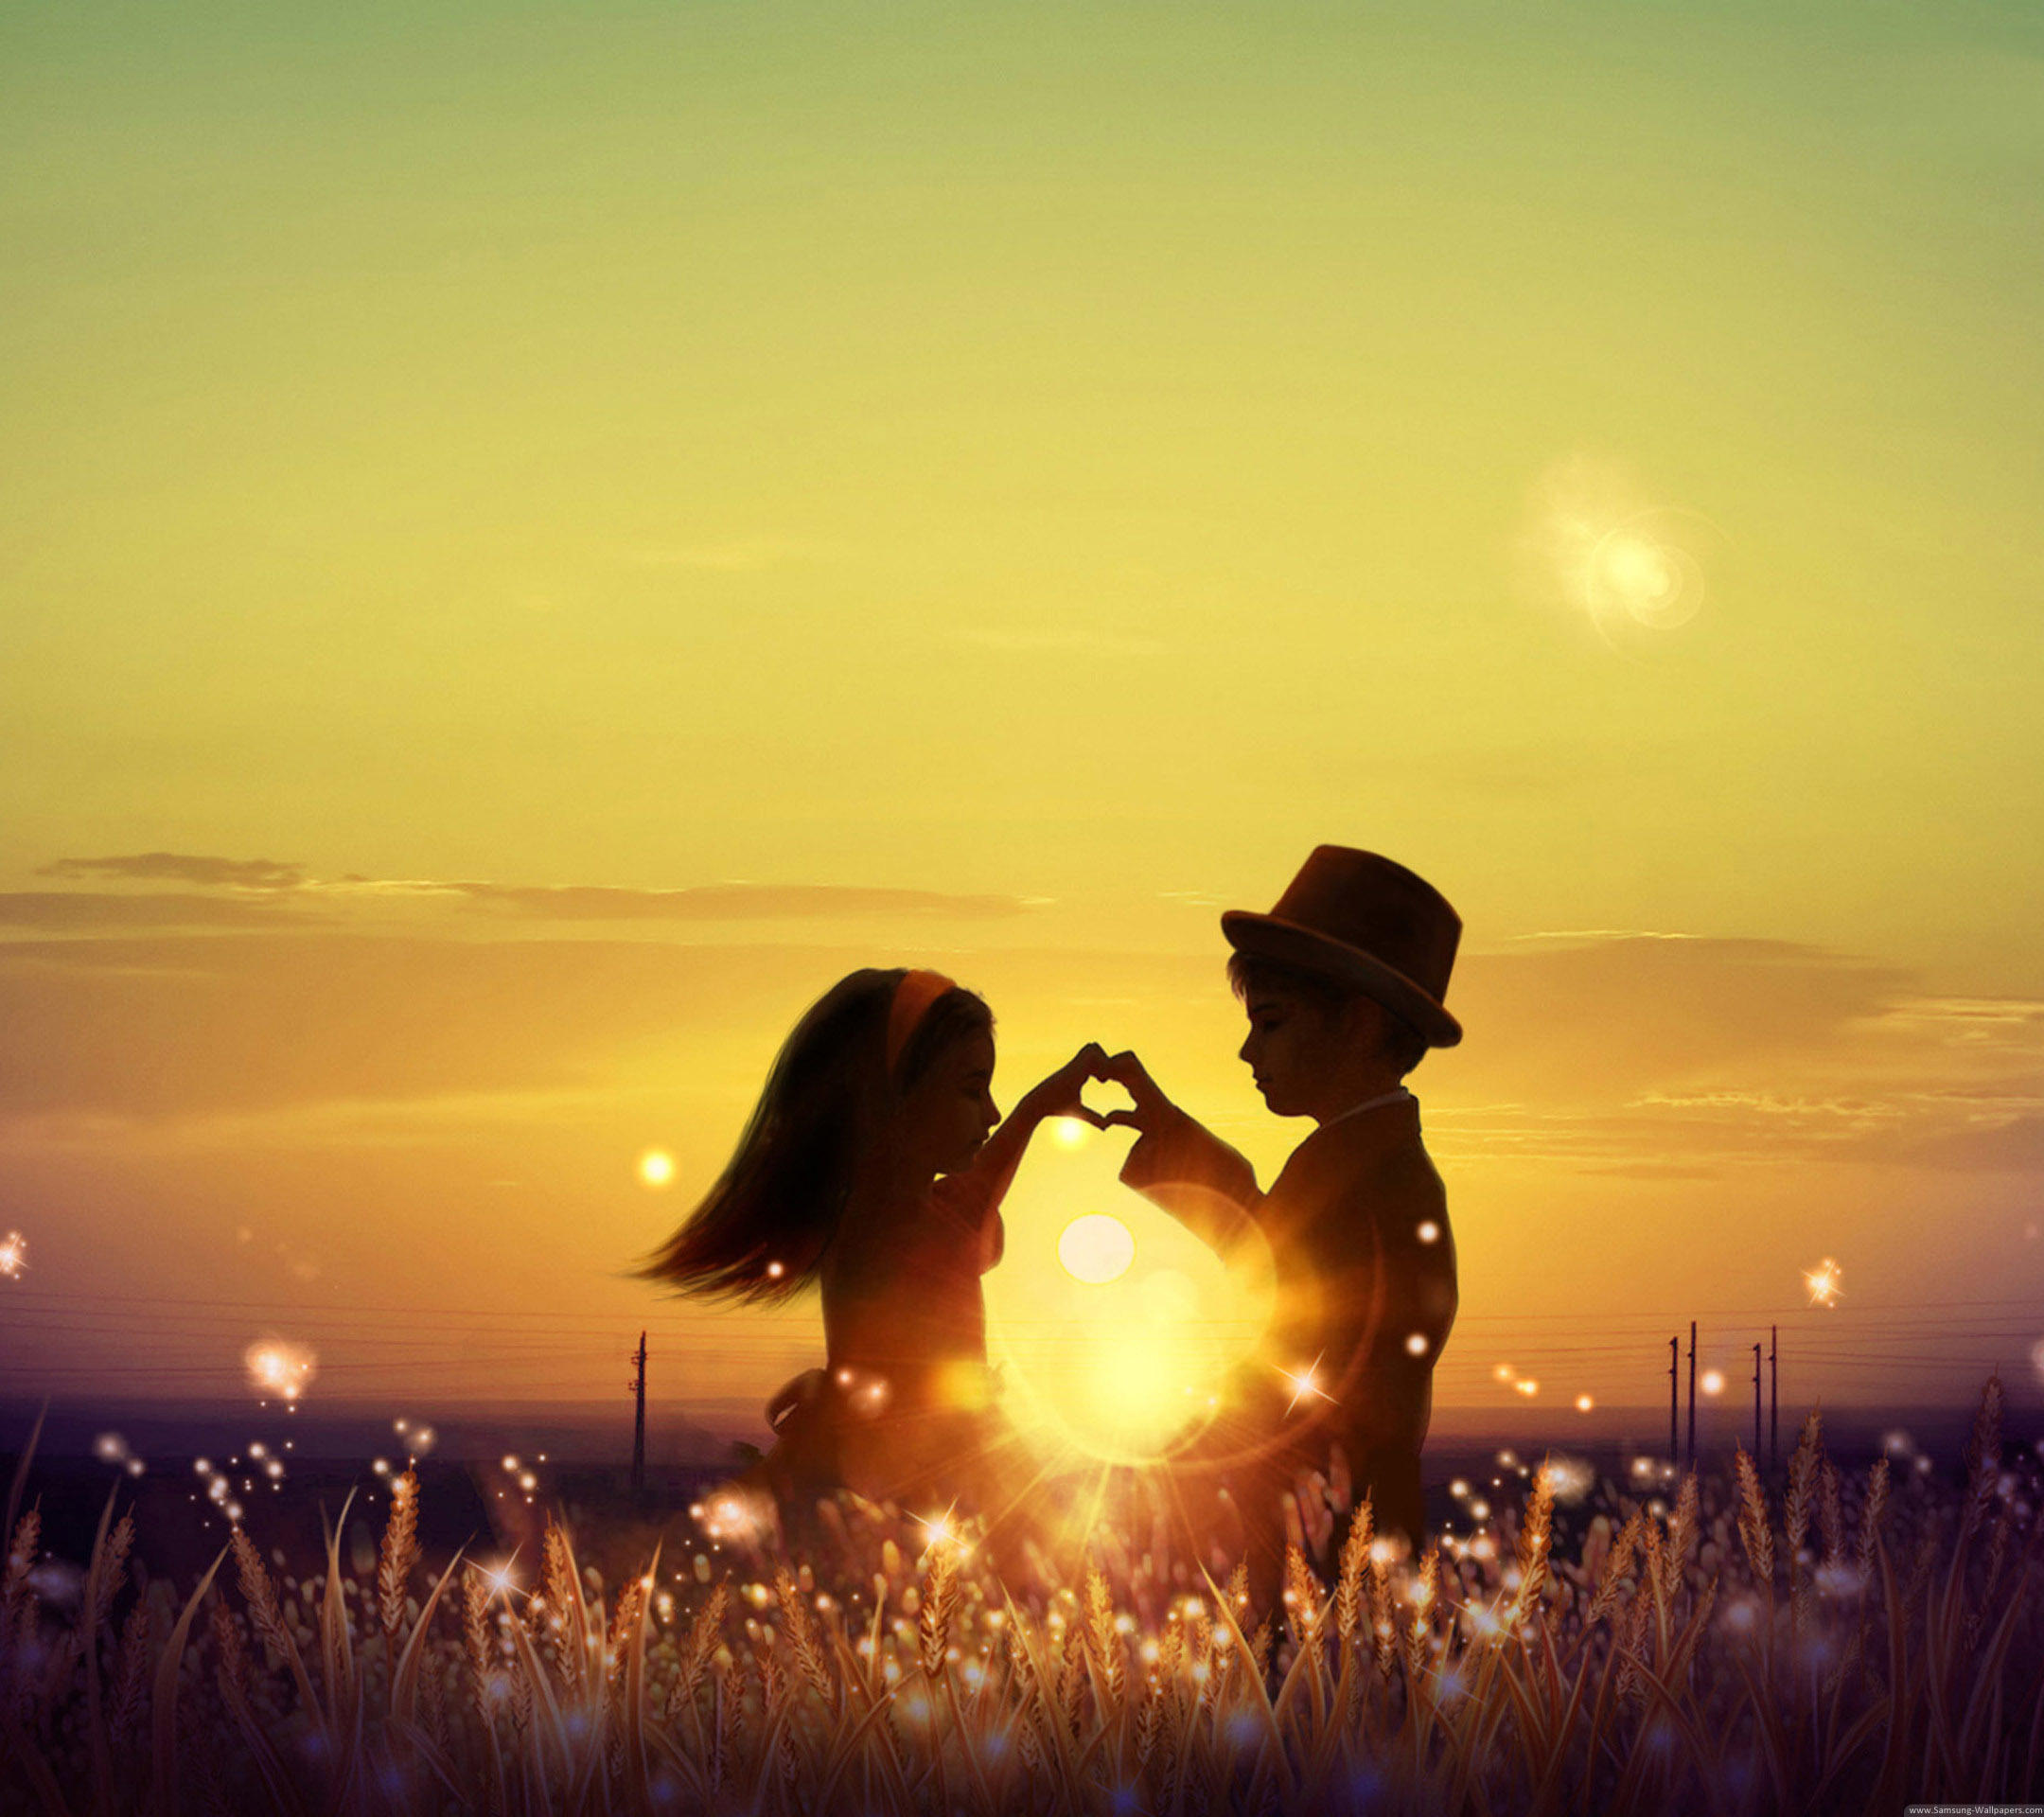 childhood Love Wallpaper : 42 child Love Lock Screen HD 2160x1920 Samsung Galaxy Note 3 Wallpaper 1697 :: children Love Hd ...